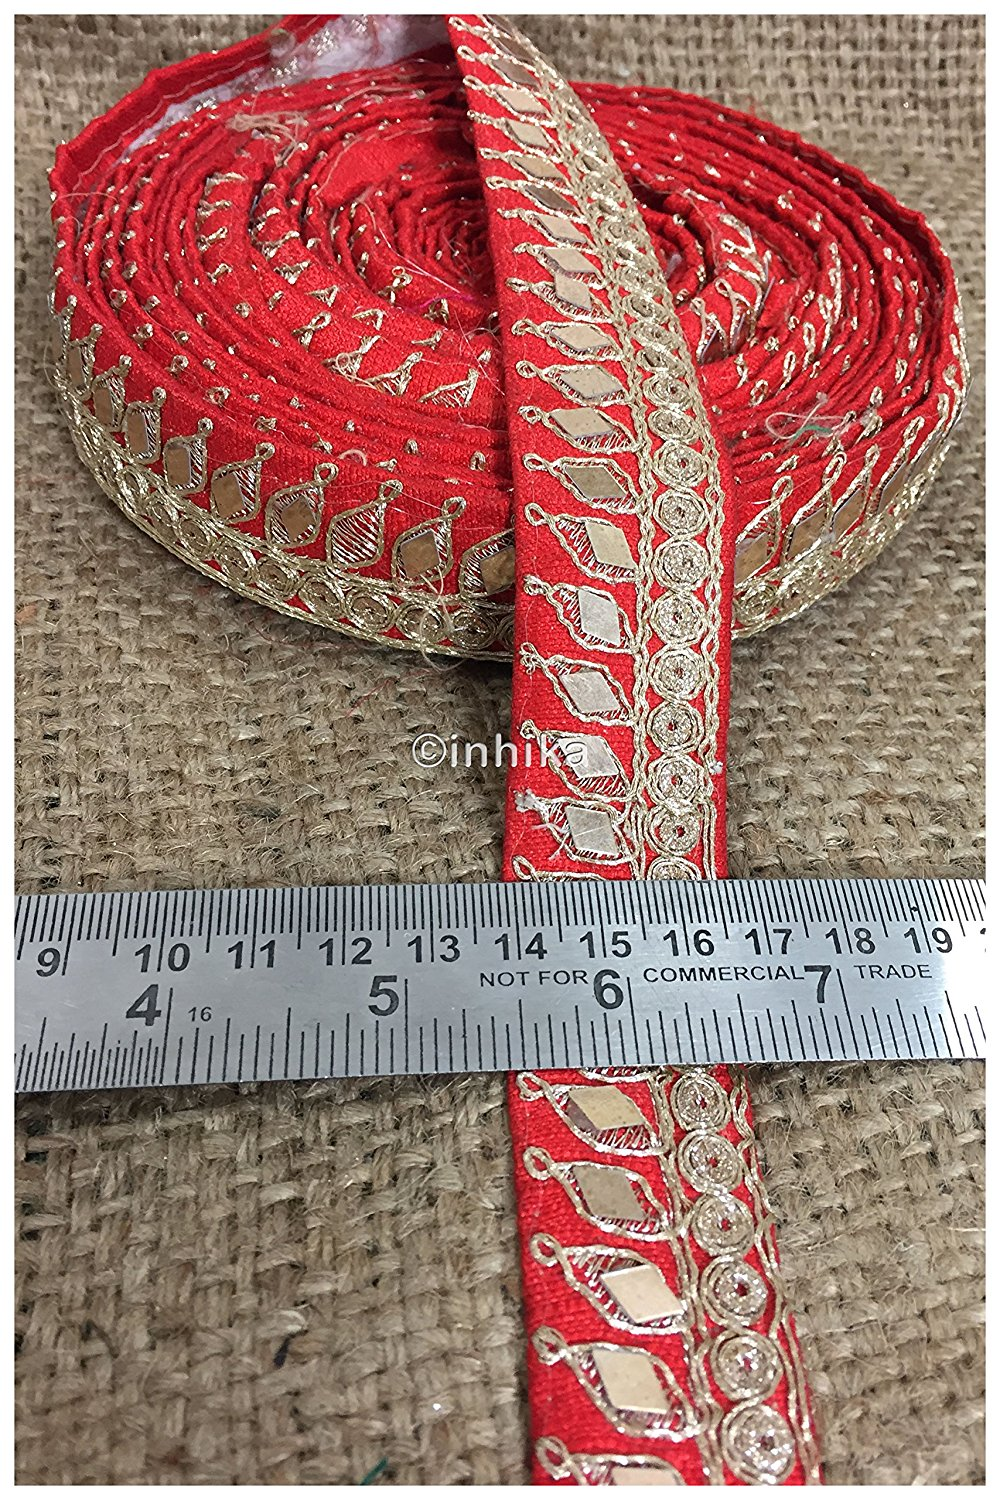 lace trim fabric garment accessories suppliers in mumbai Red, Embroidery, Mirror, 2 Inch Wide material Cotton Mix